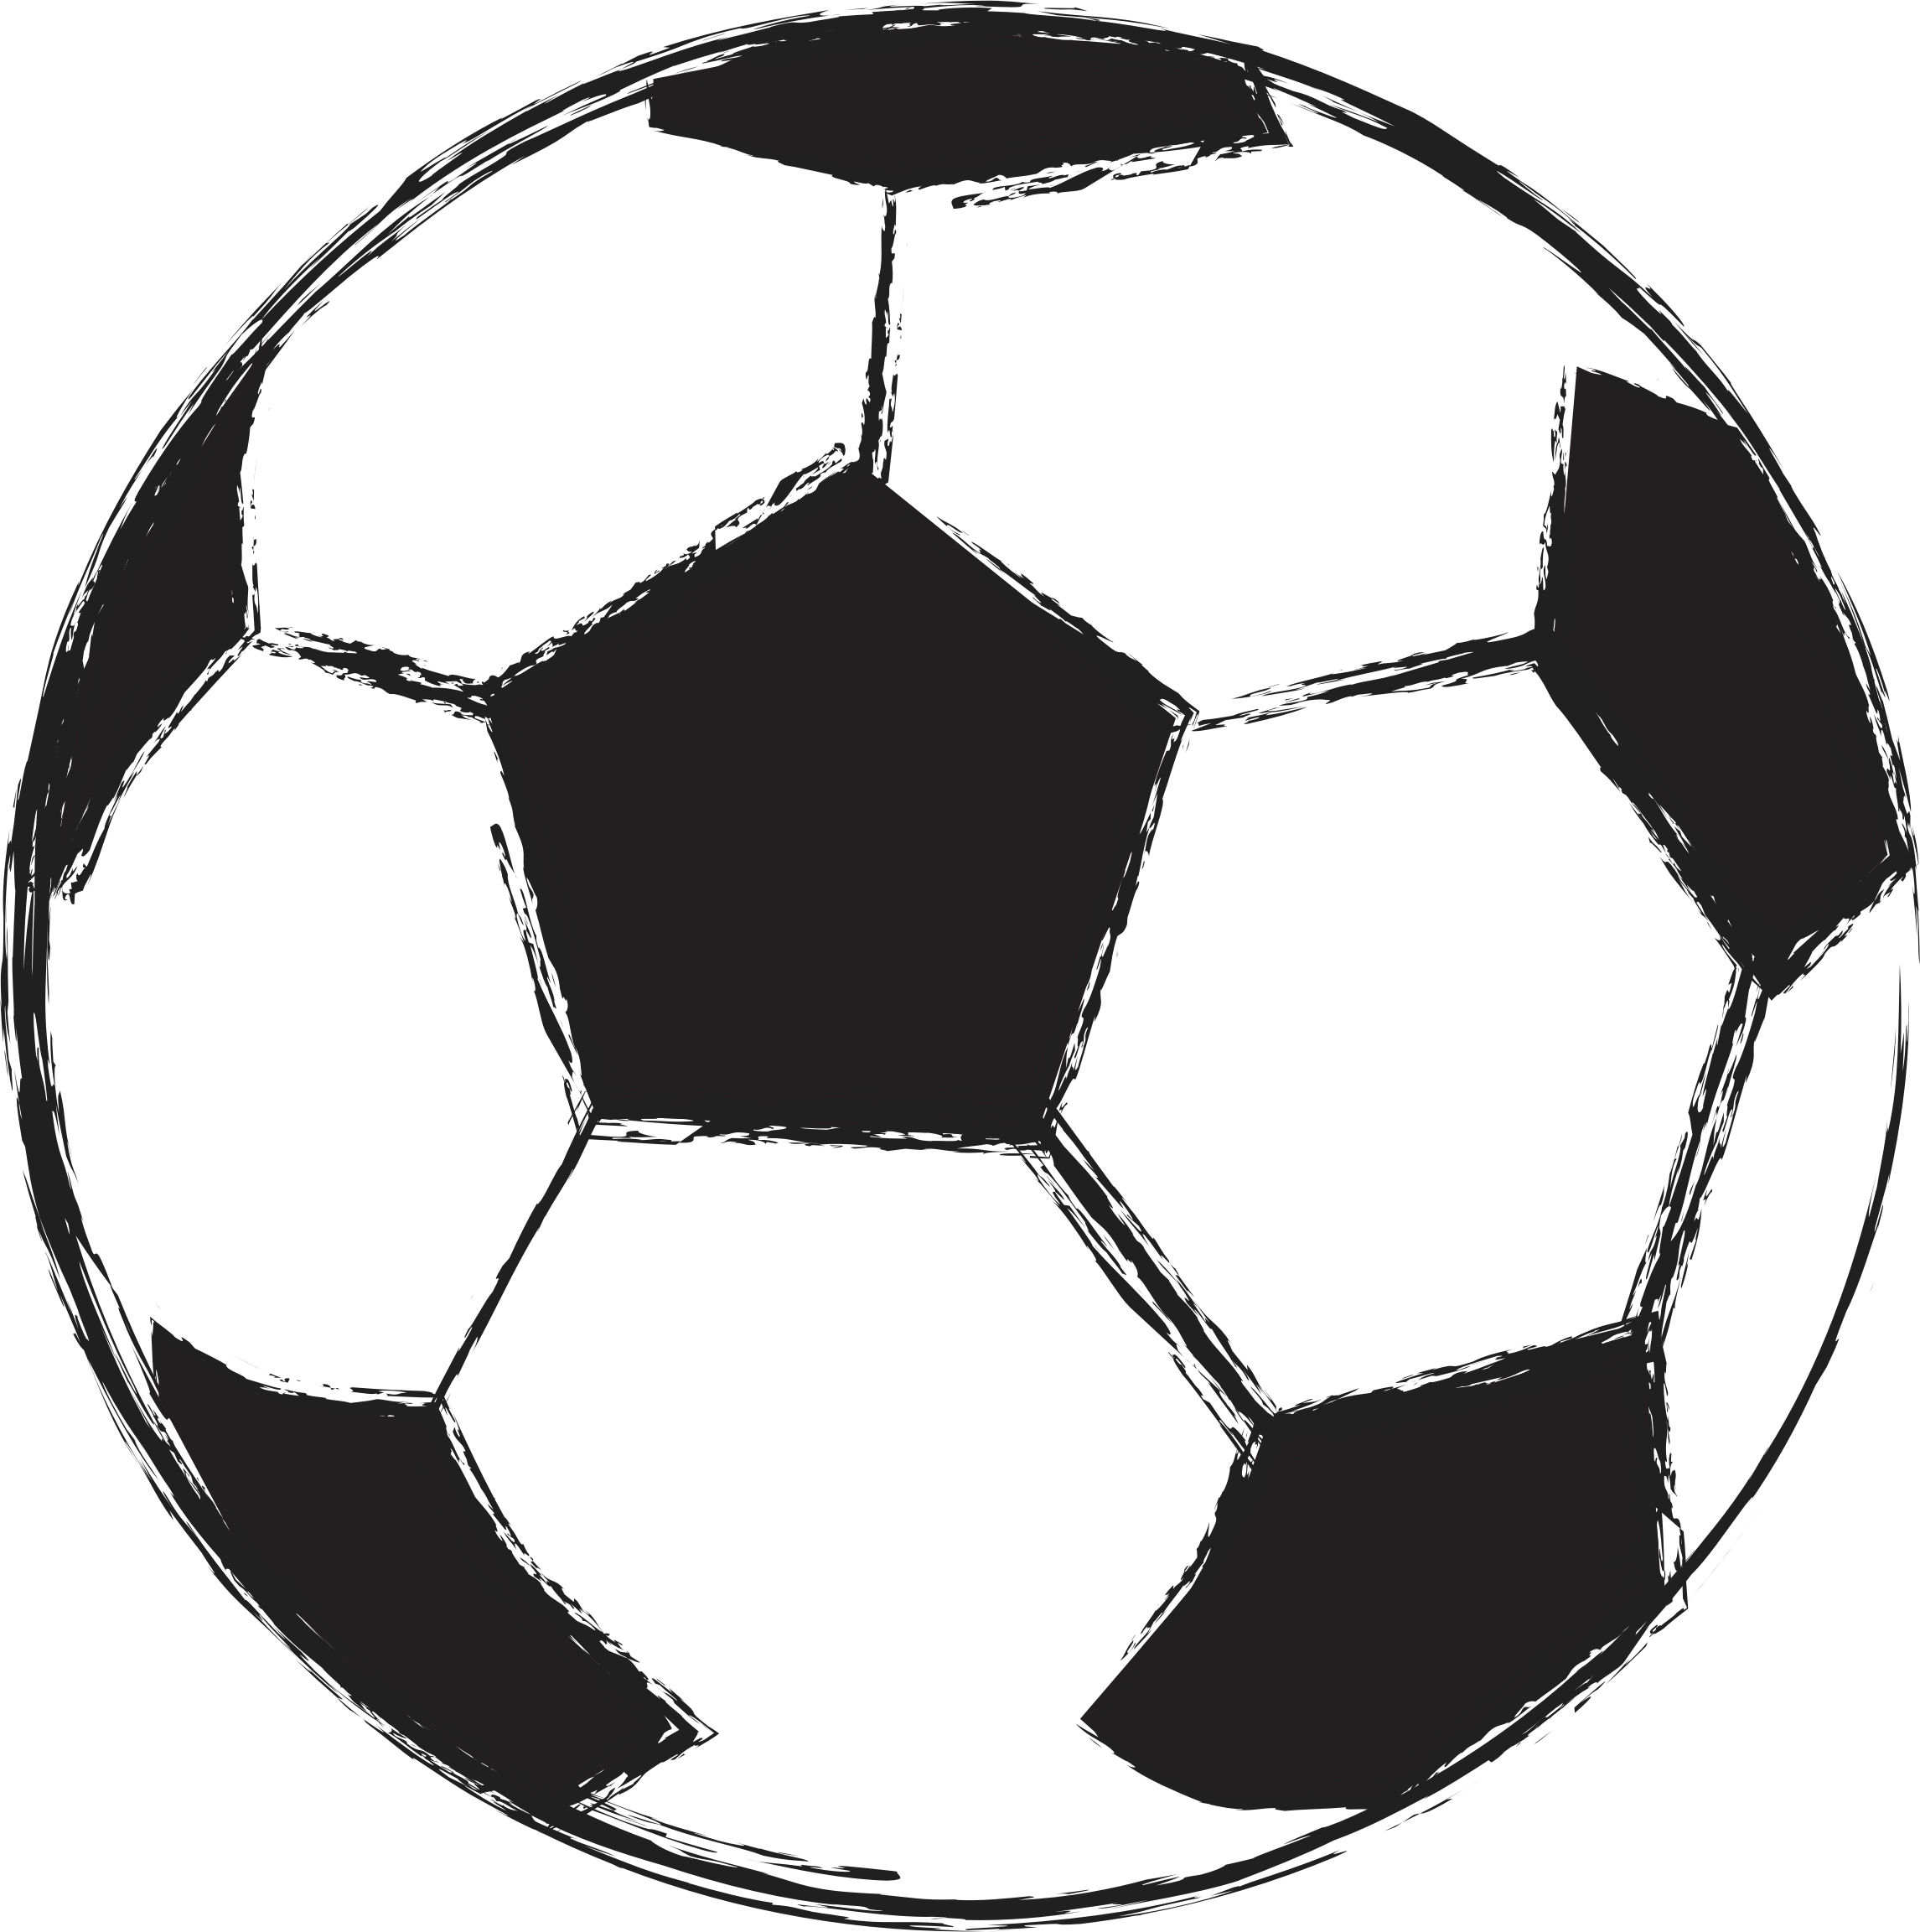 Top drawing football. Png images ball